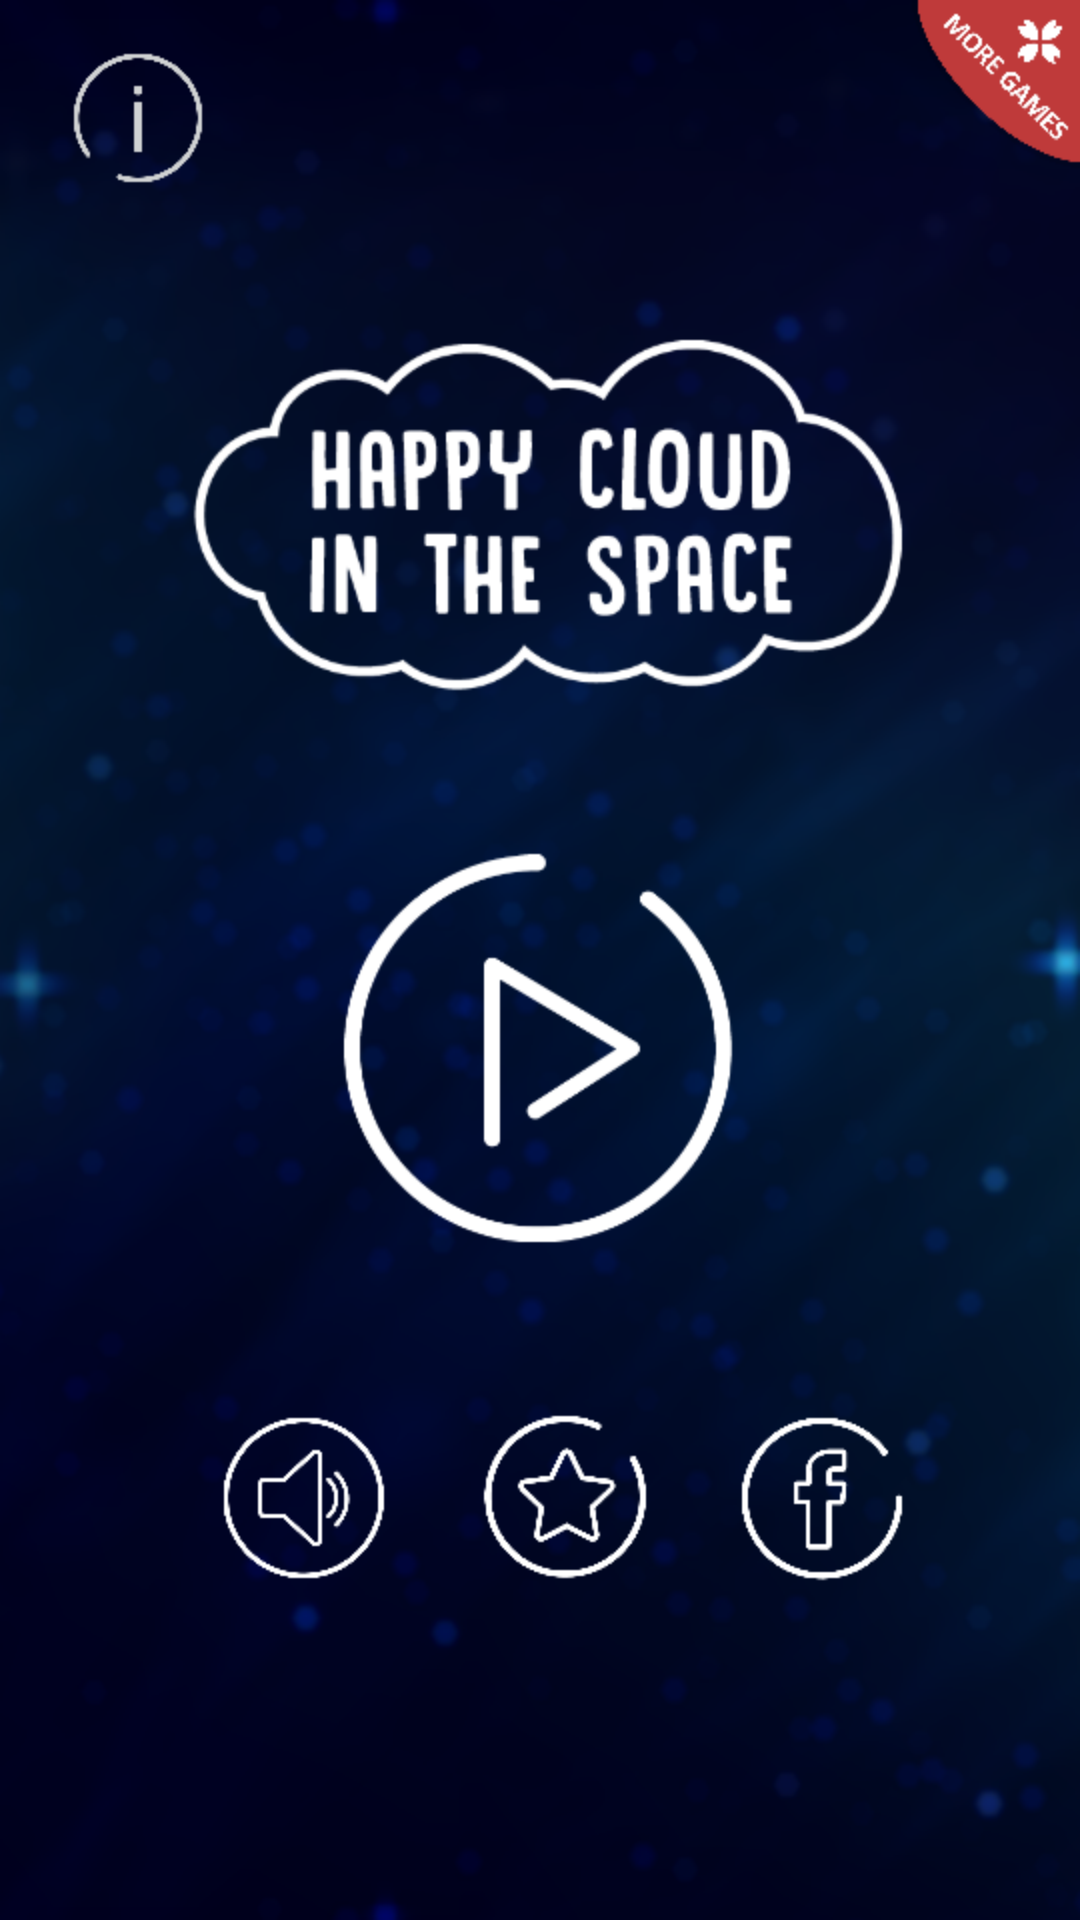 Happy Cloud In The Space - IOS XCODE Source + Buildbox Template